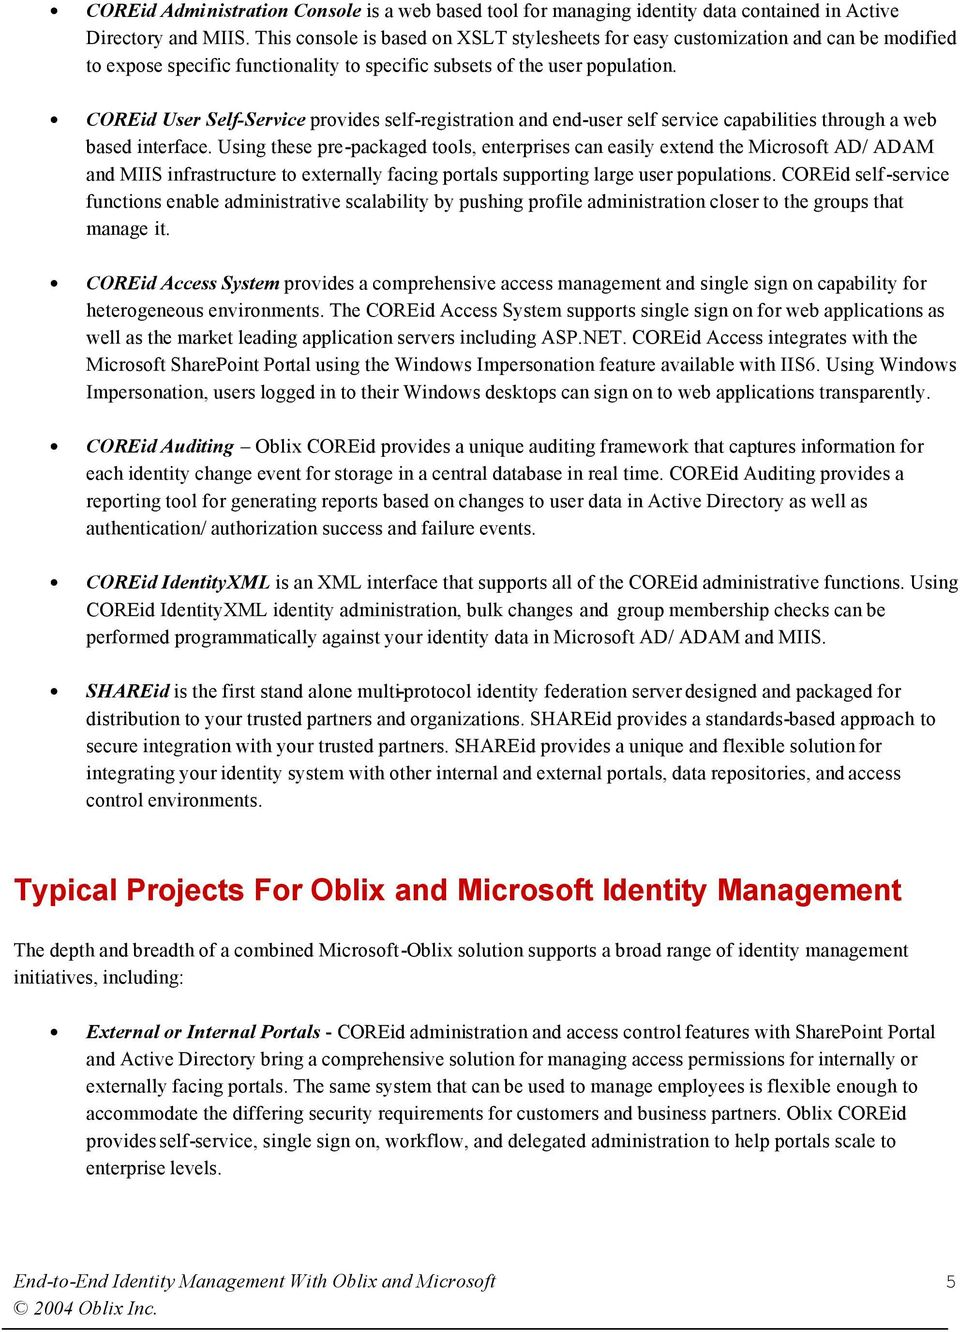 End-to-End Identity Management With Oblix and Microsoft